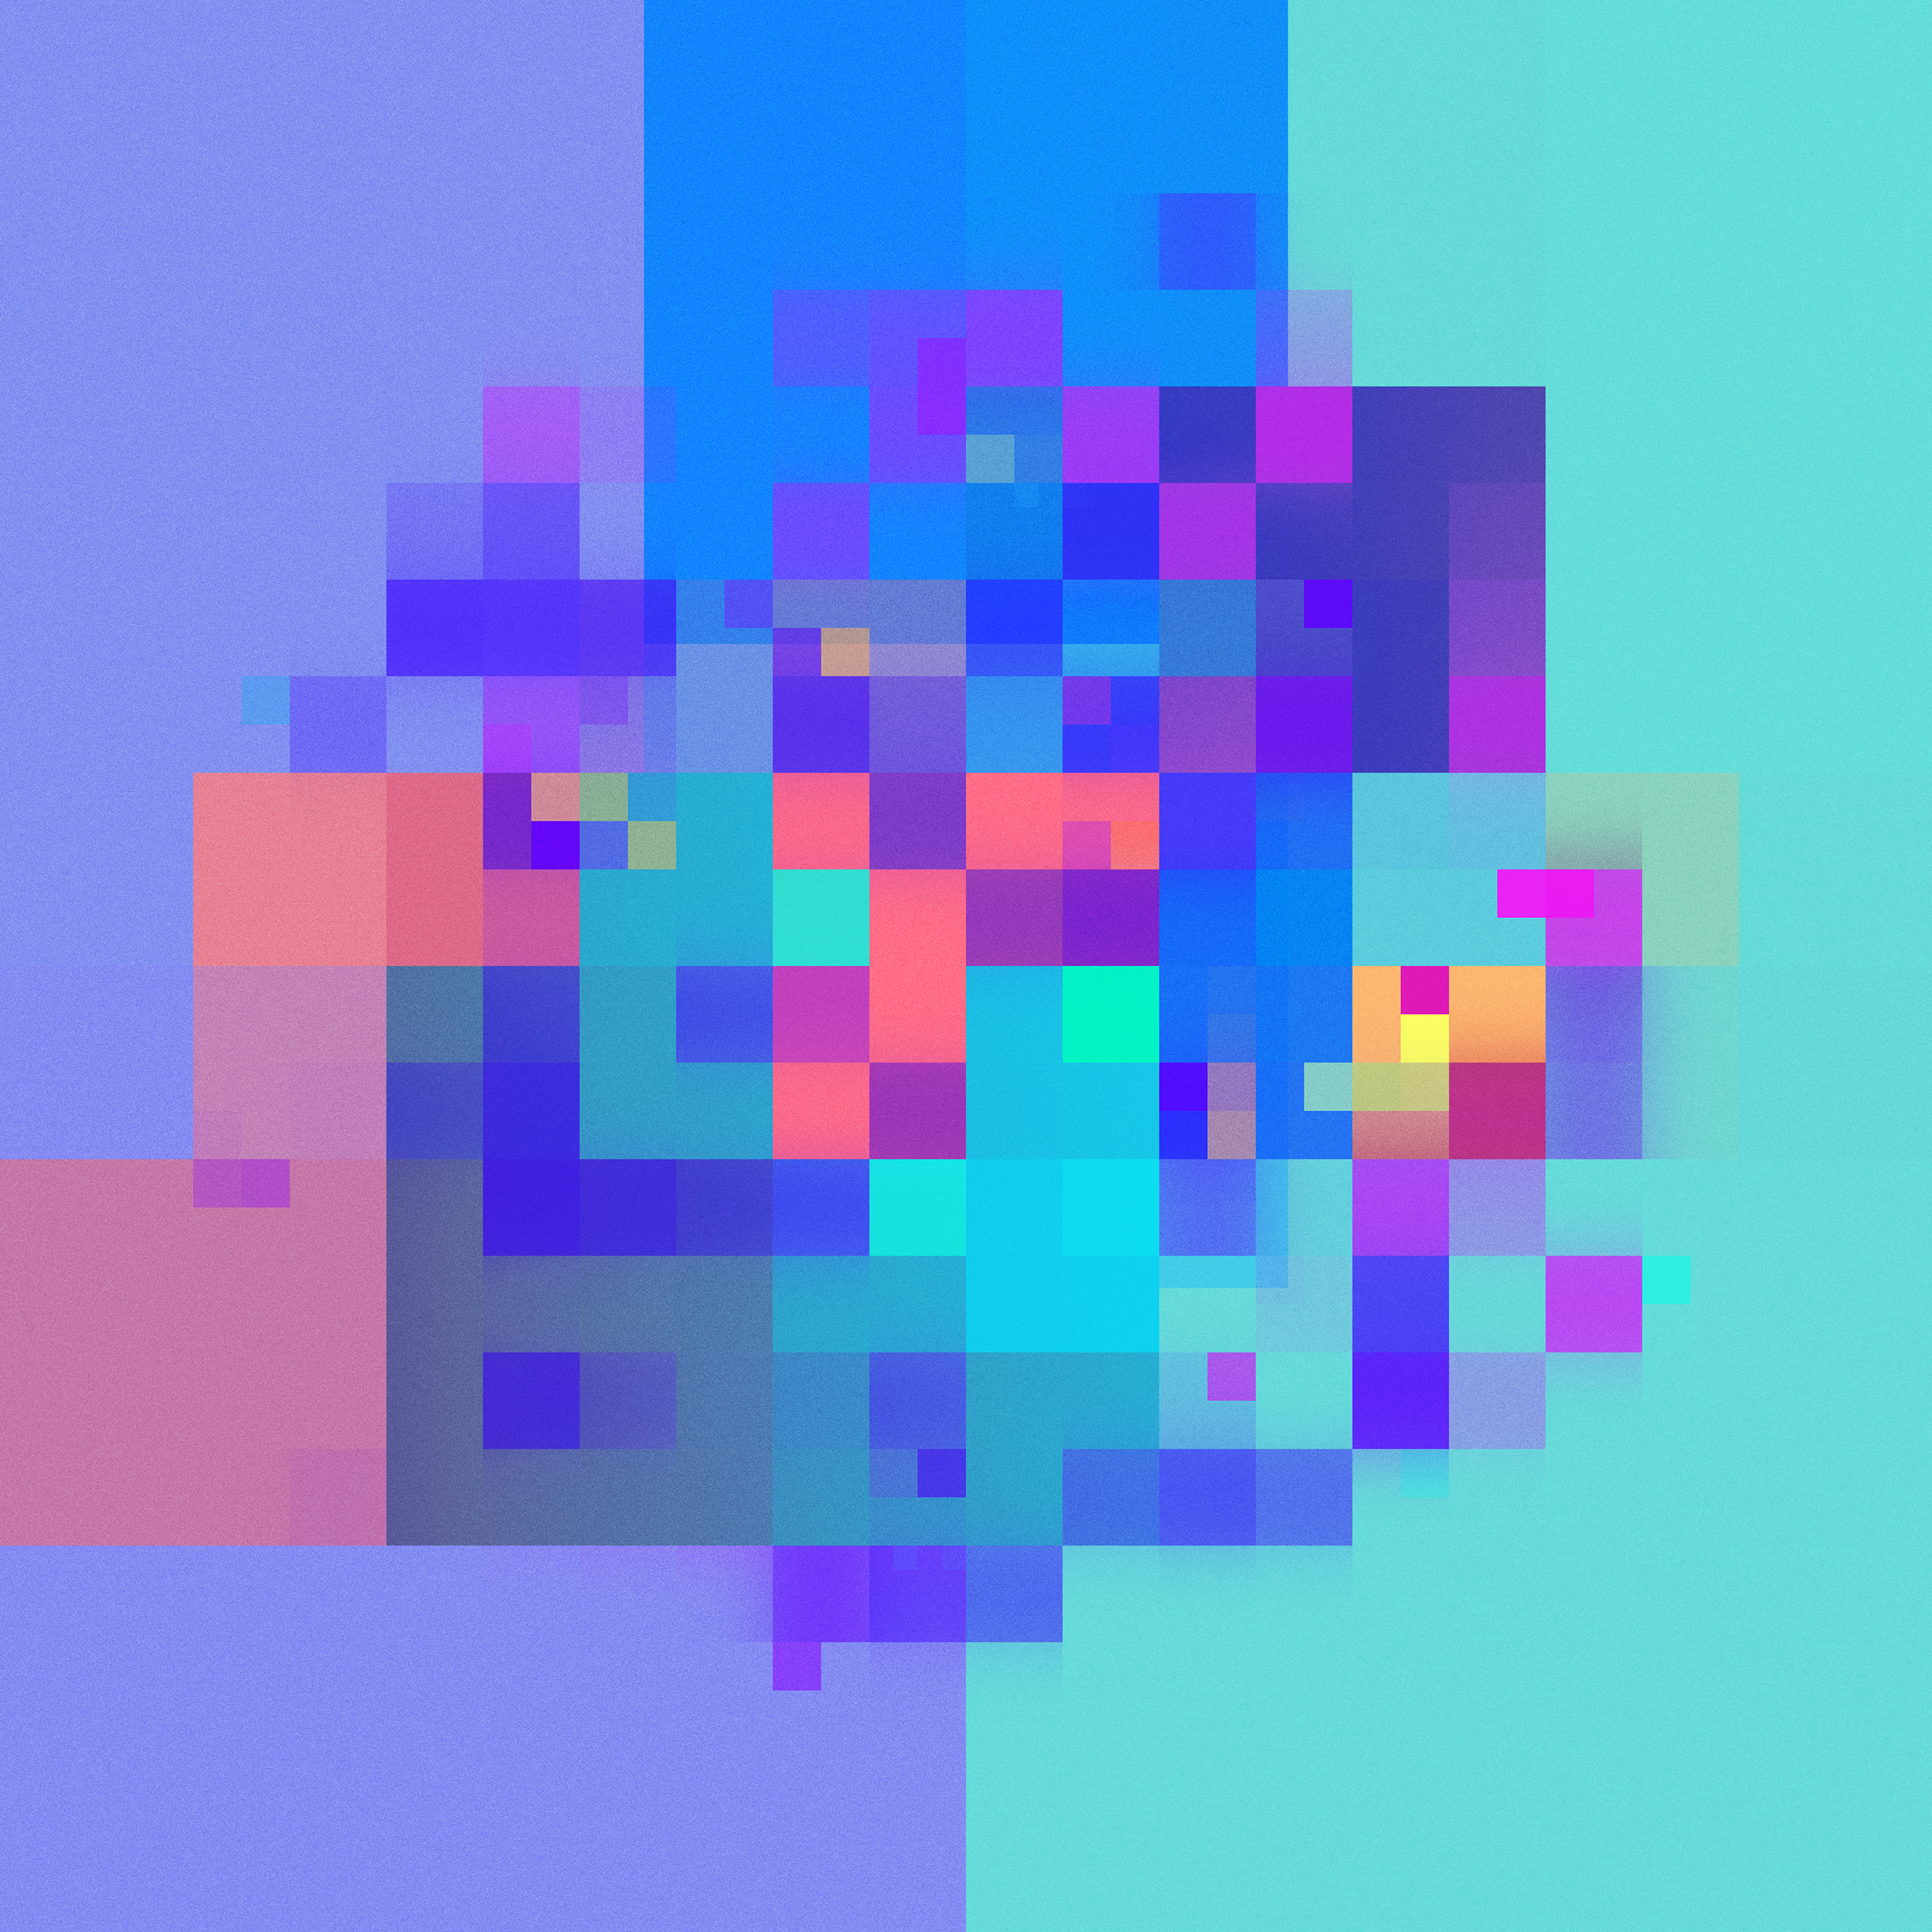 IBM_AI_Art_002_00110.jpg